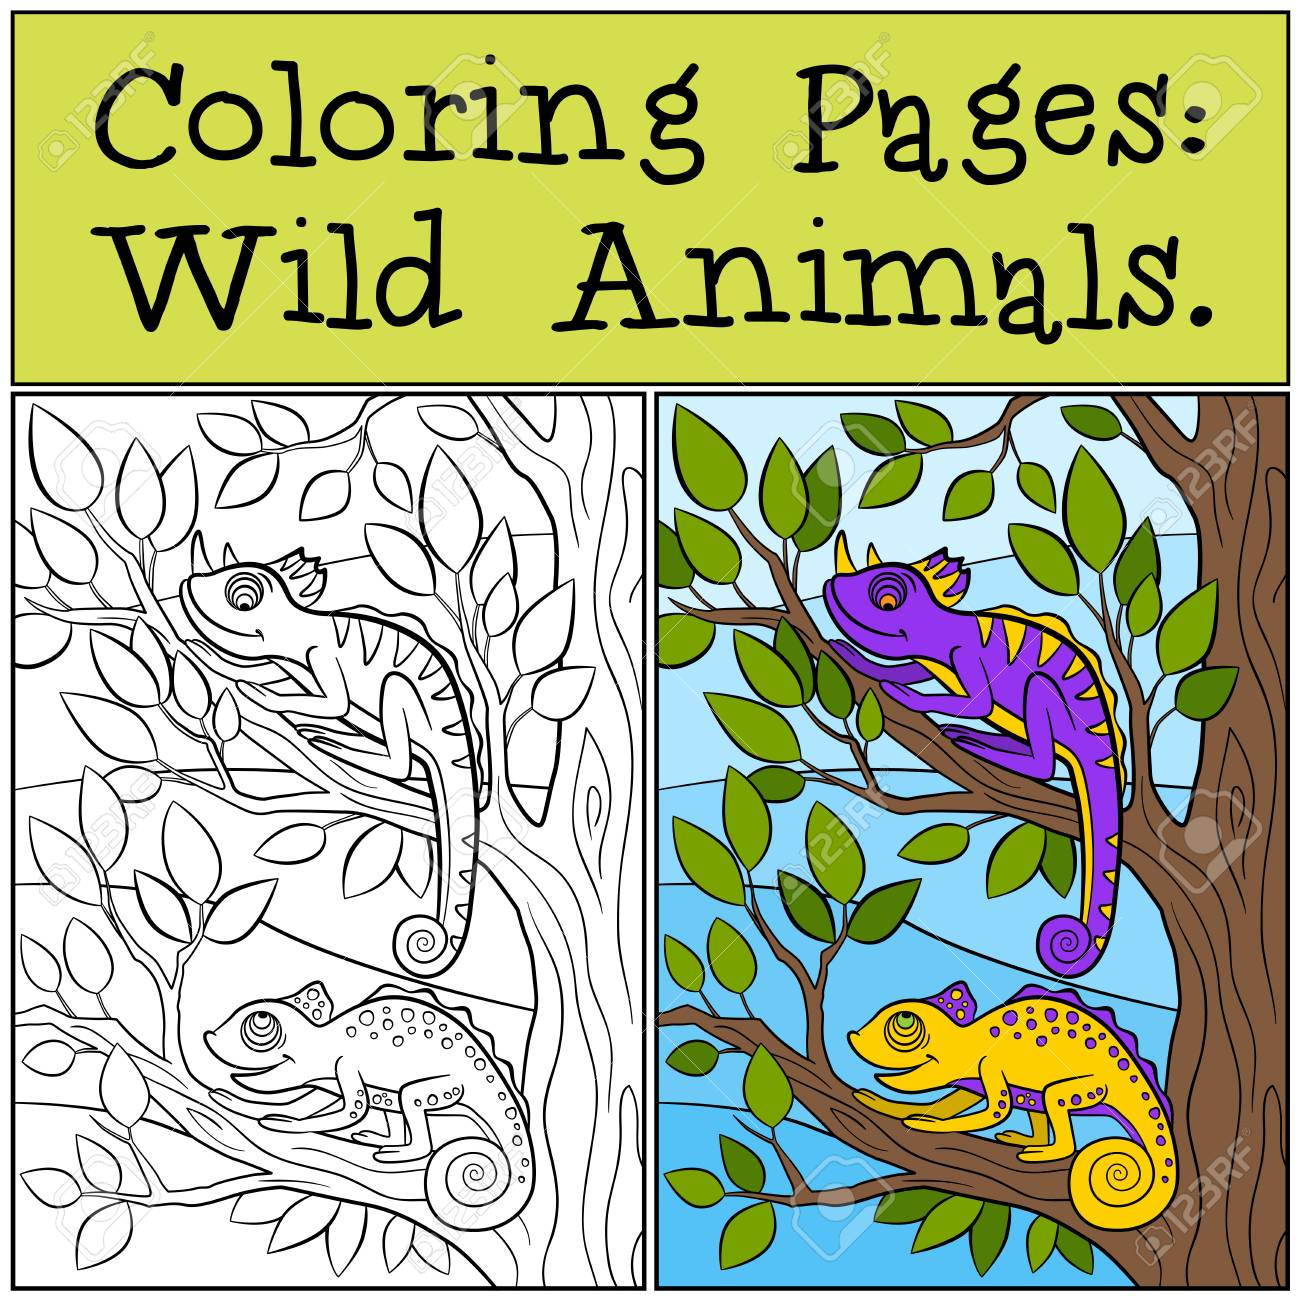 Coloring Pages: Wild Animals. Two Little Cute Chameleons Sits ...